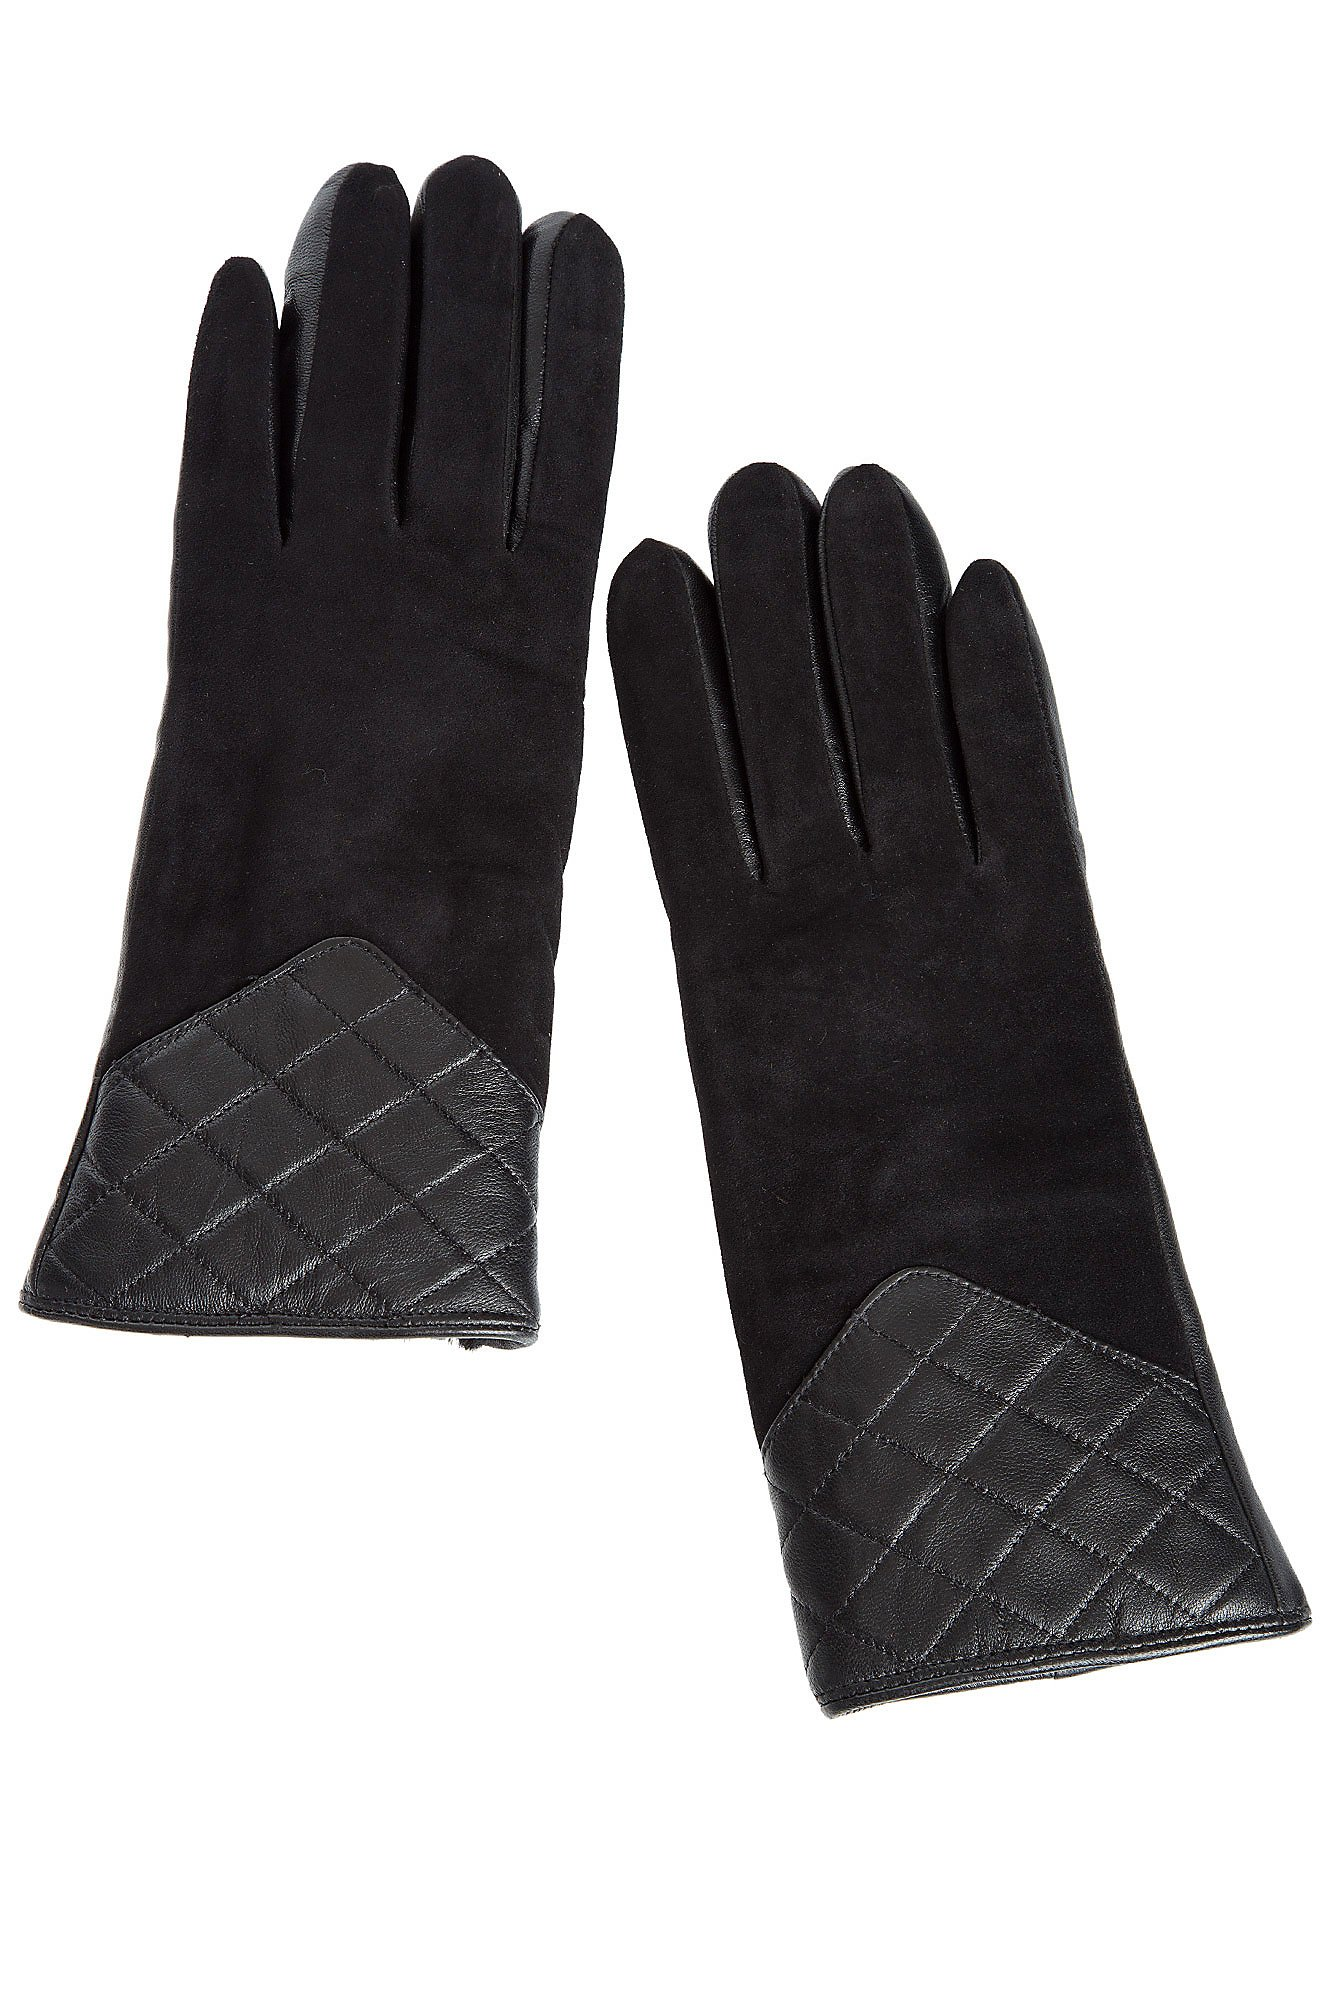 Women's Shearling Sheepskin Quilted Gloves, BLACK, Size LARGE (7.5-8'')